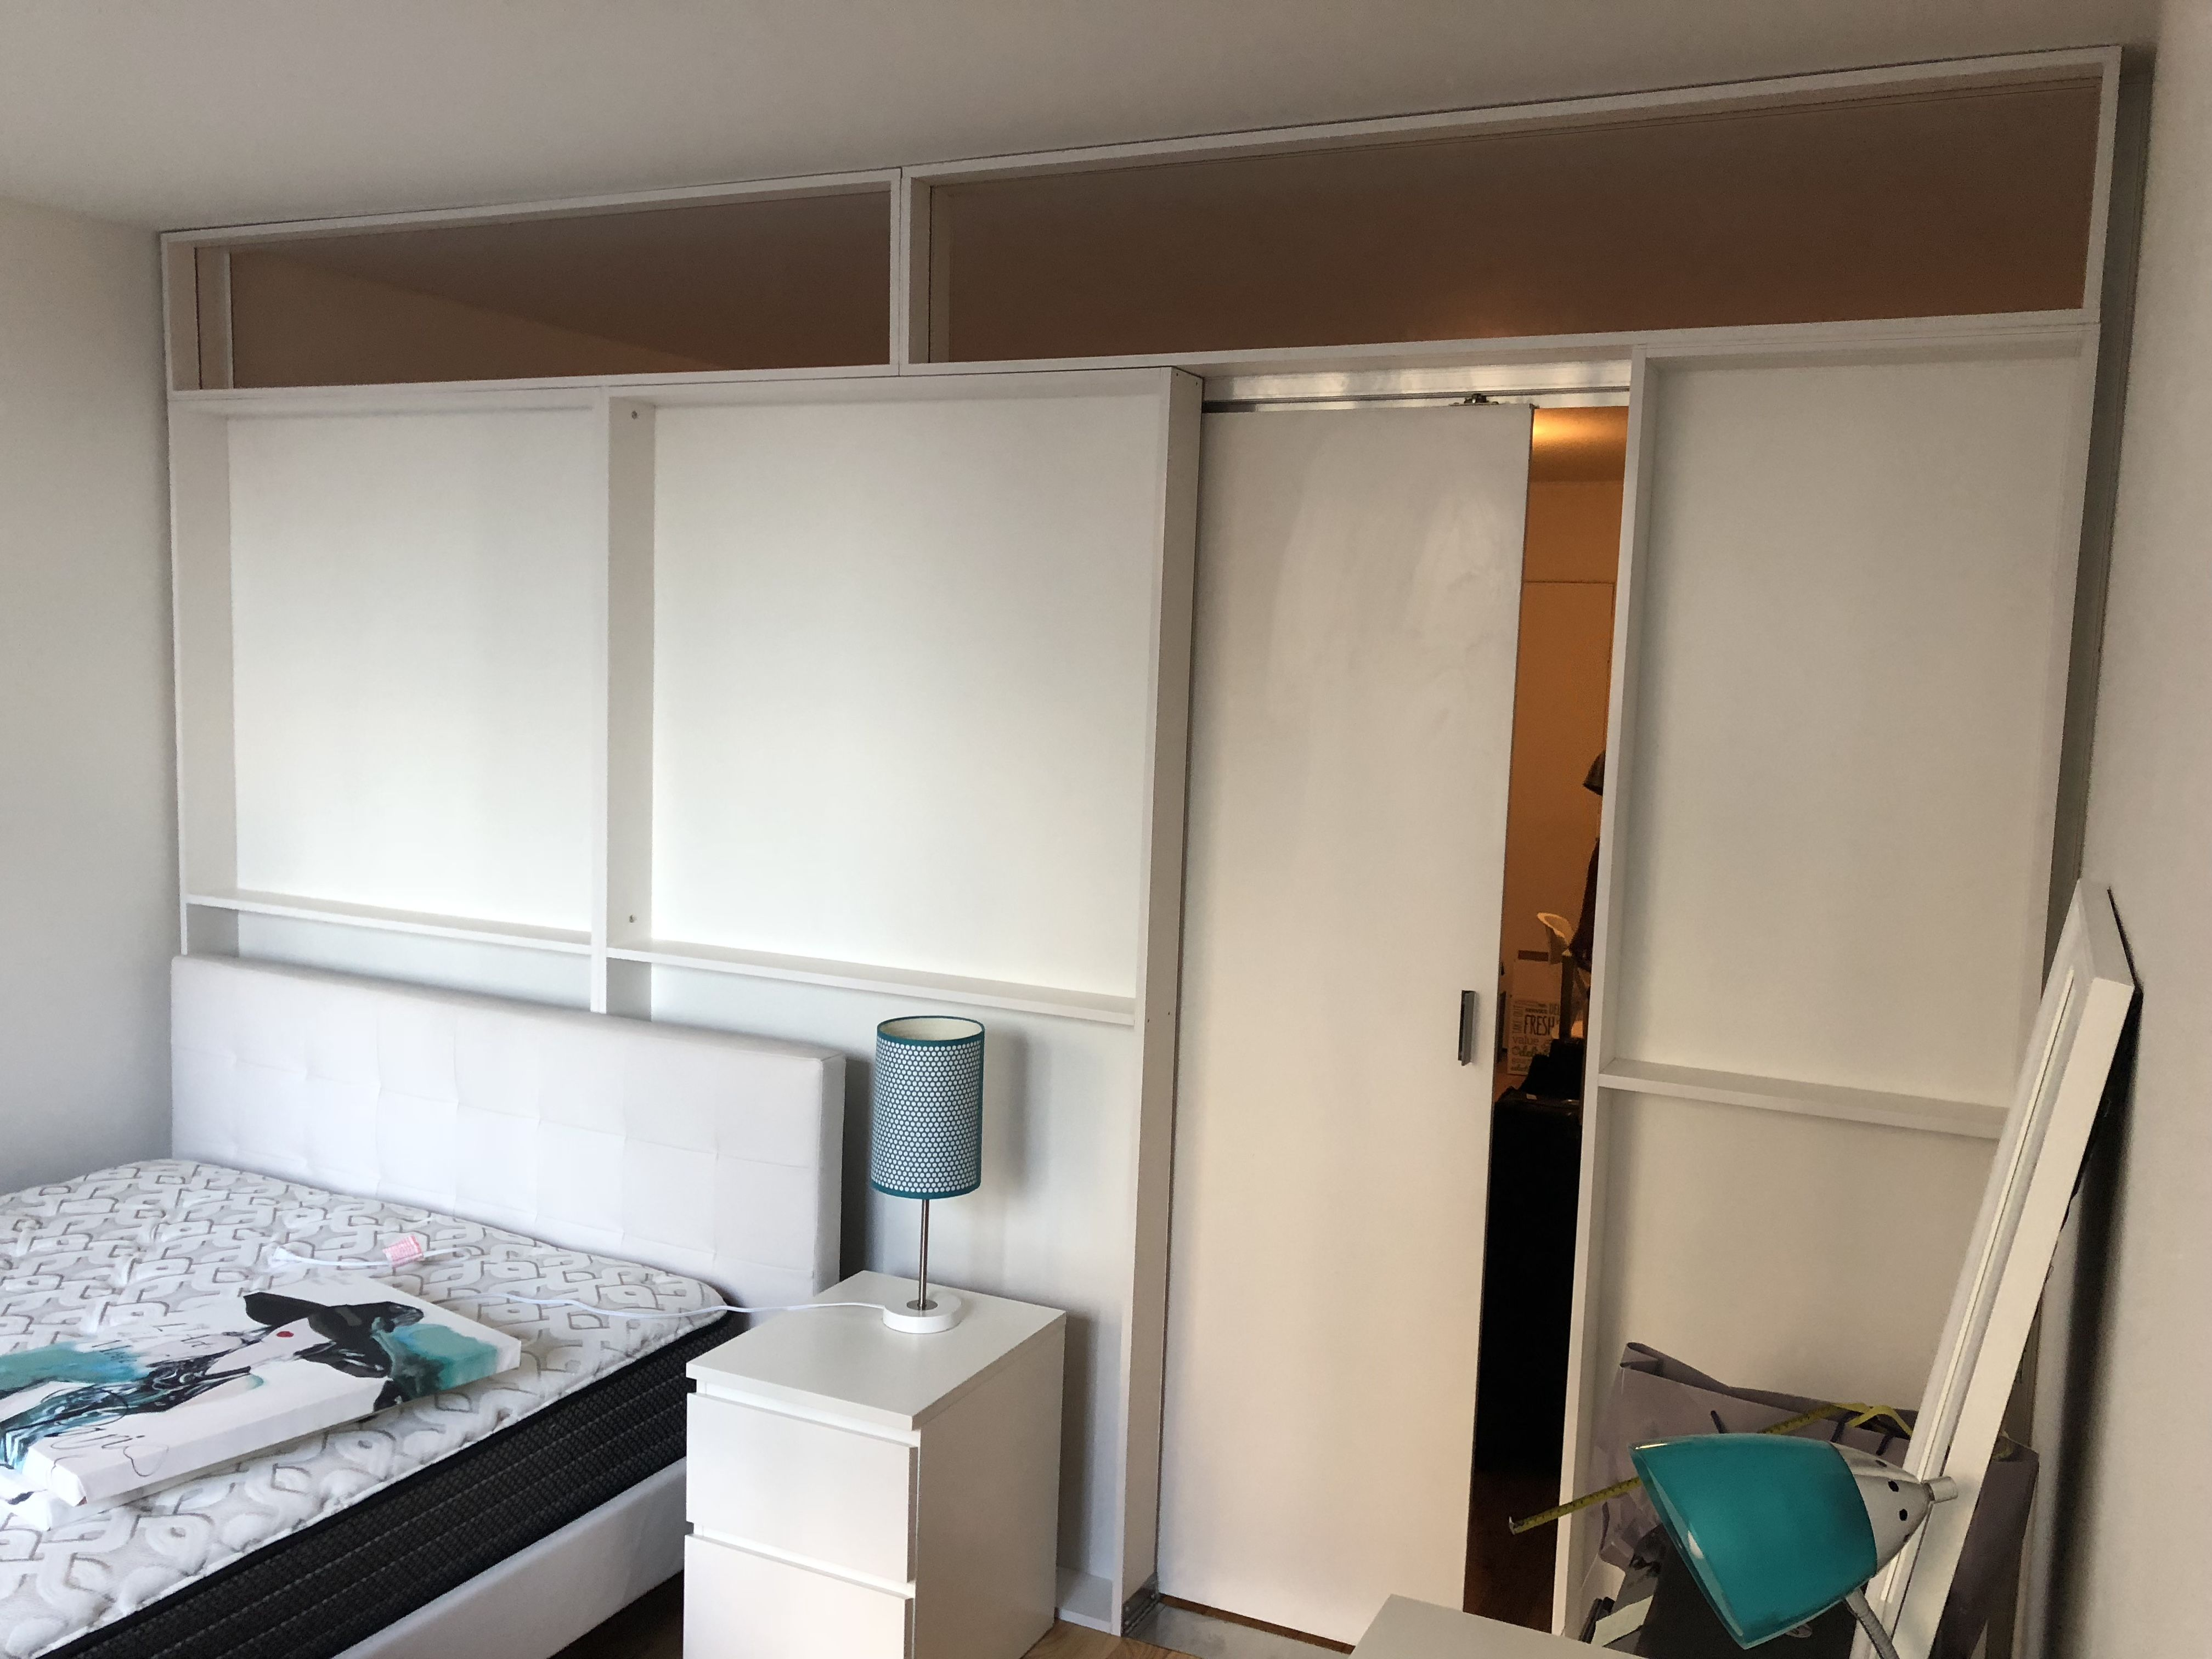 Free standing room divider with a door room divider